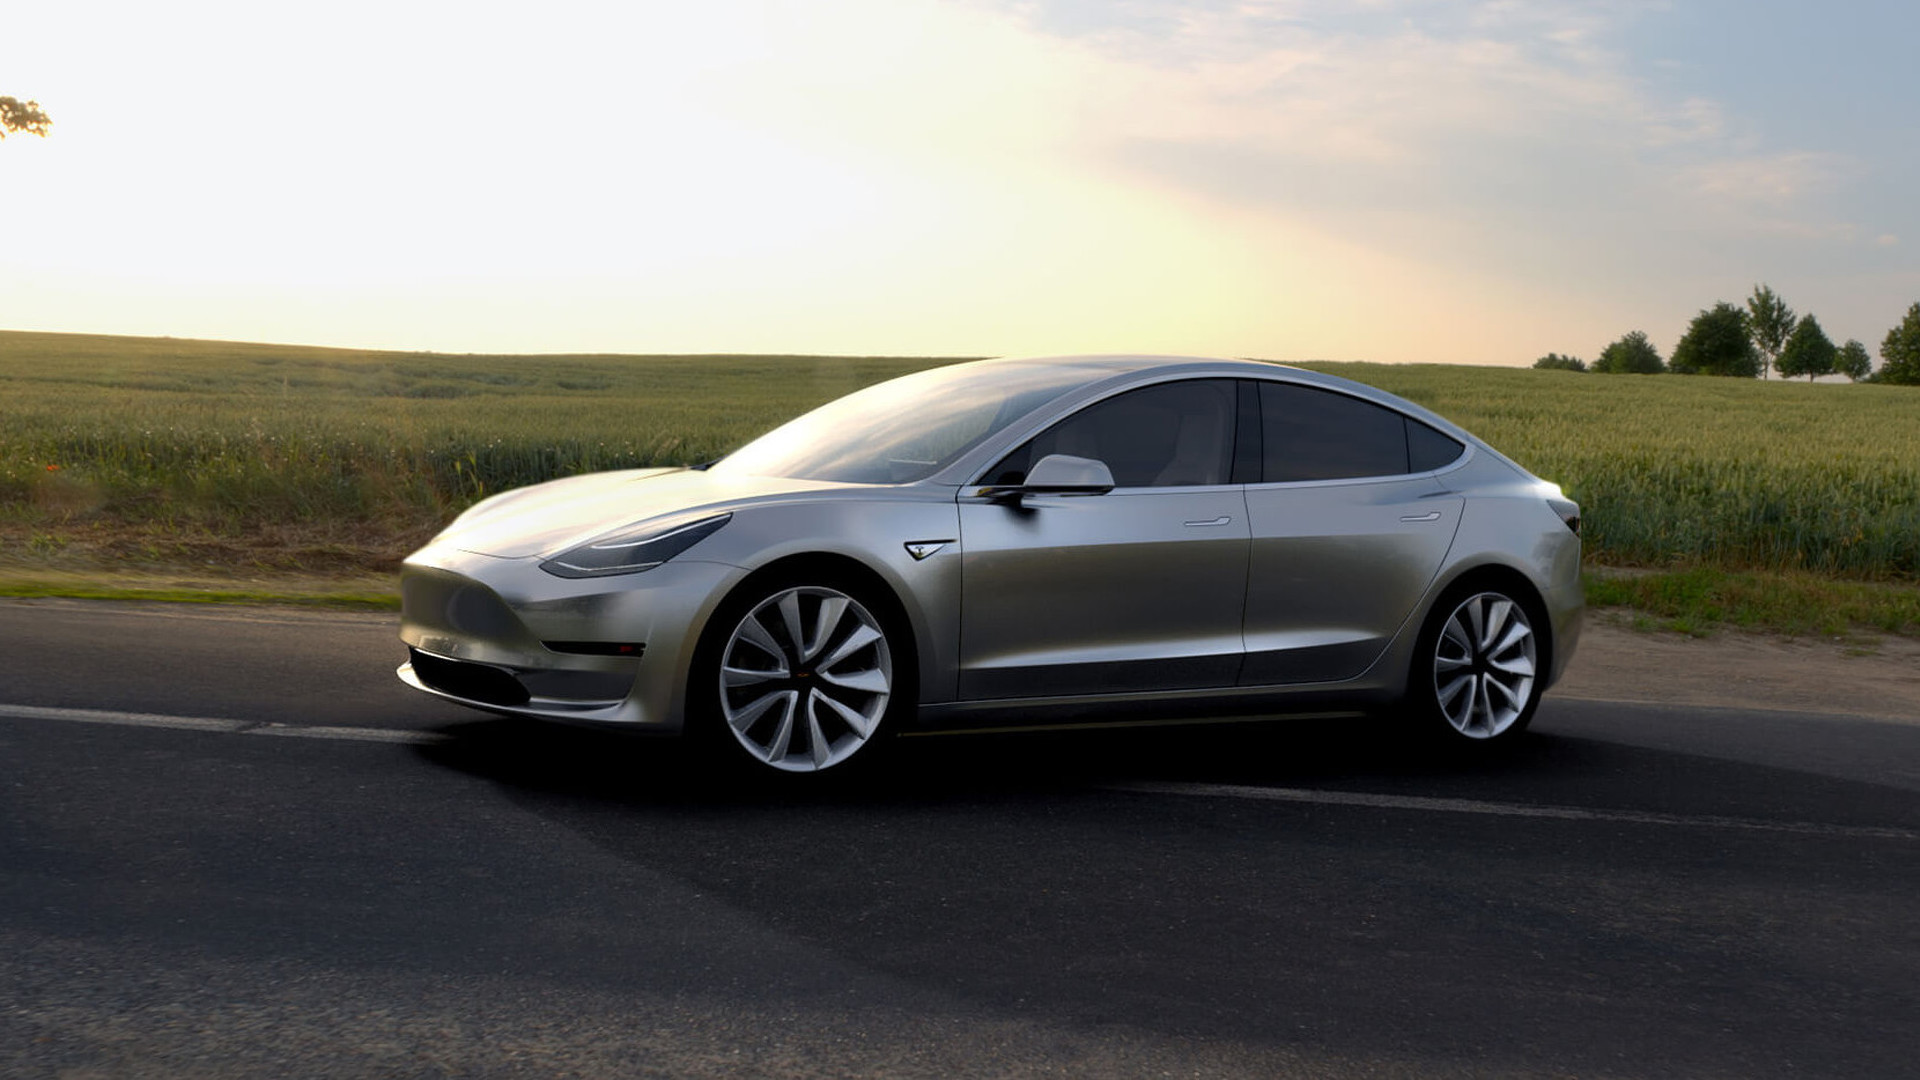 FCA will copy the Tesla Model 3 if it's profitable